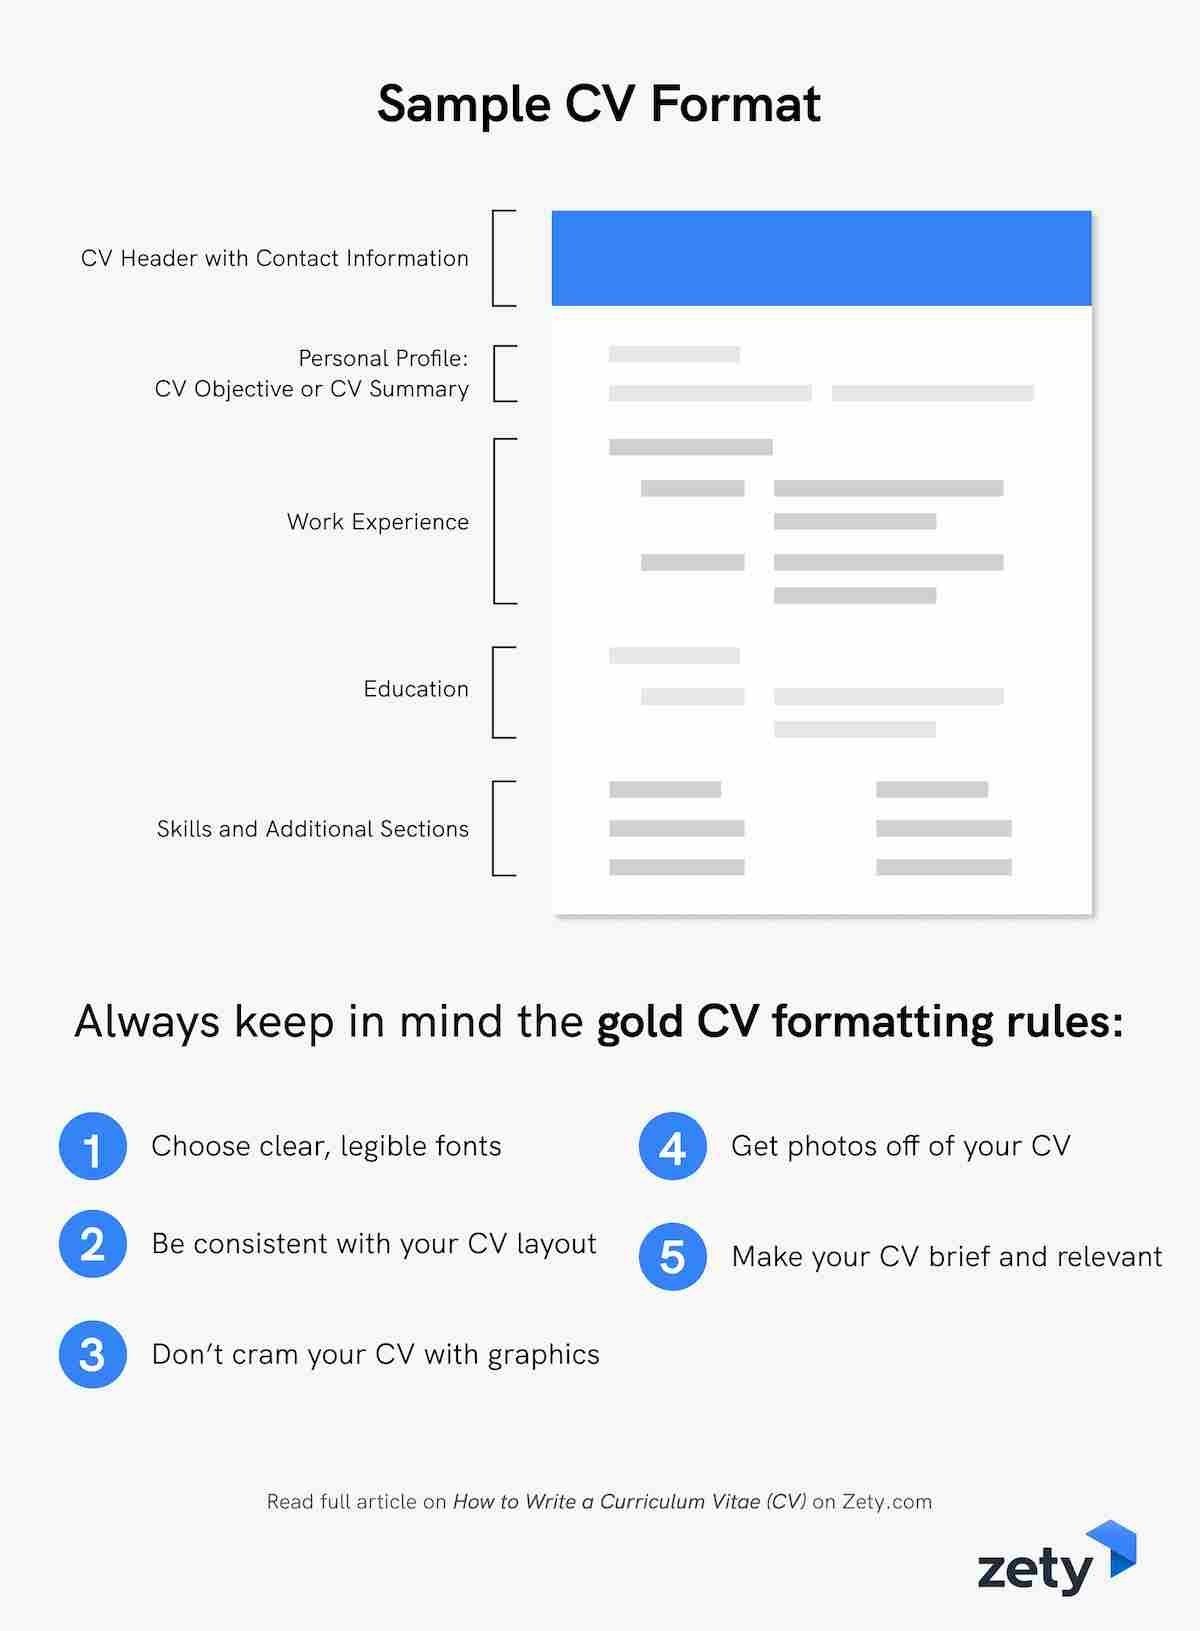 Sample CV Format with Formatting Rules